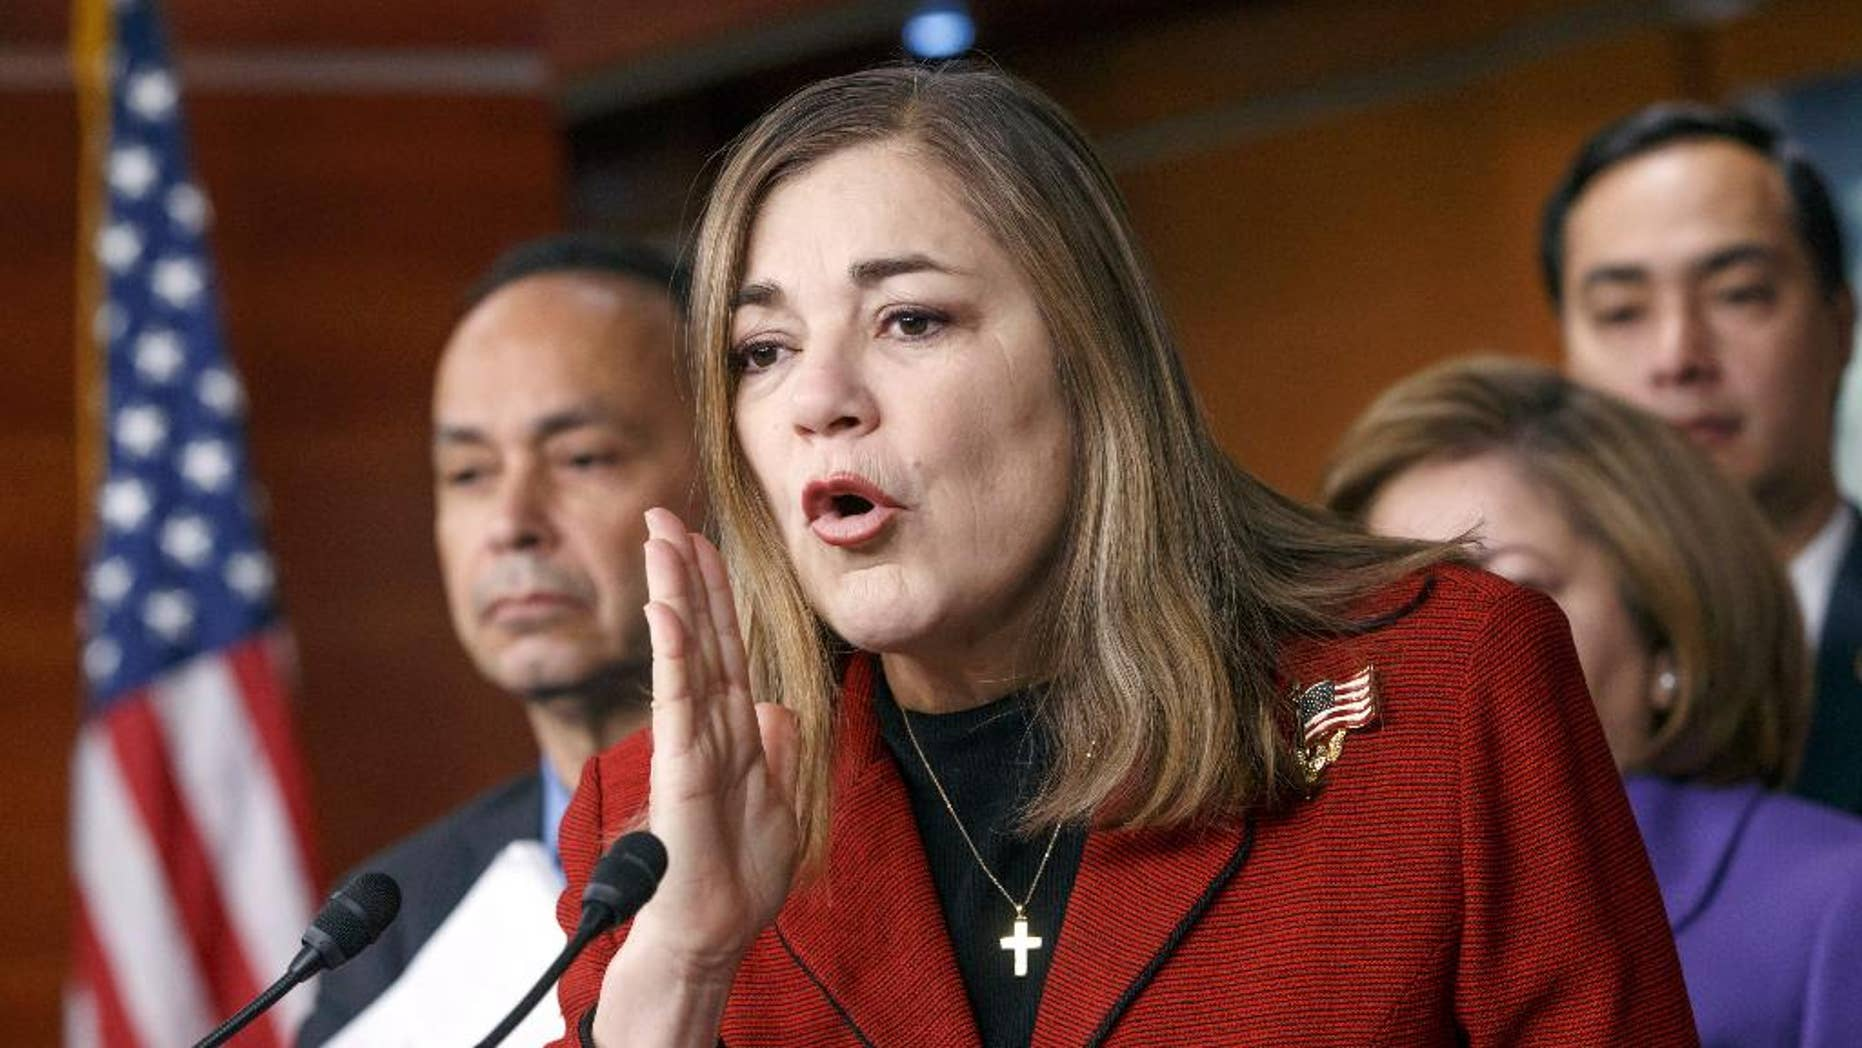 FILE - In this Feb. 13, 2015, file photo, Rep. Loretta Sanchez, D-Calif., speaks during a Congressional Hispanic Caucus news conference on Capitol Hill in Washington. Sanchez, now also a US. Senate candidate, is being criticized after suggesting that as many as two of 10 Muslims would engage in terrorism to establish a strict Islamic state. Sanchez said in a statement Friday, Dec. 11, 2015 that the figure does not reflect her views on the Muslim community in America, and most Muslims around the world are committed to peace.(AP Photo/J. Scott Applewhite, File)